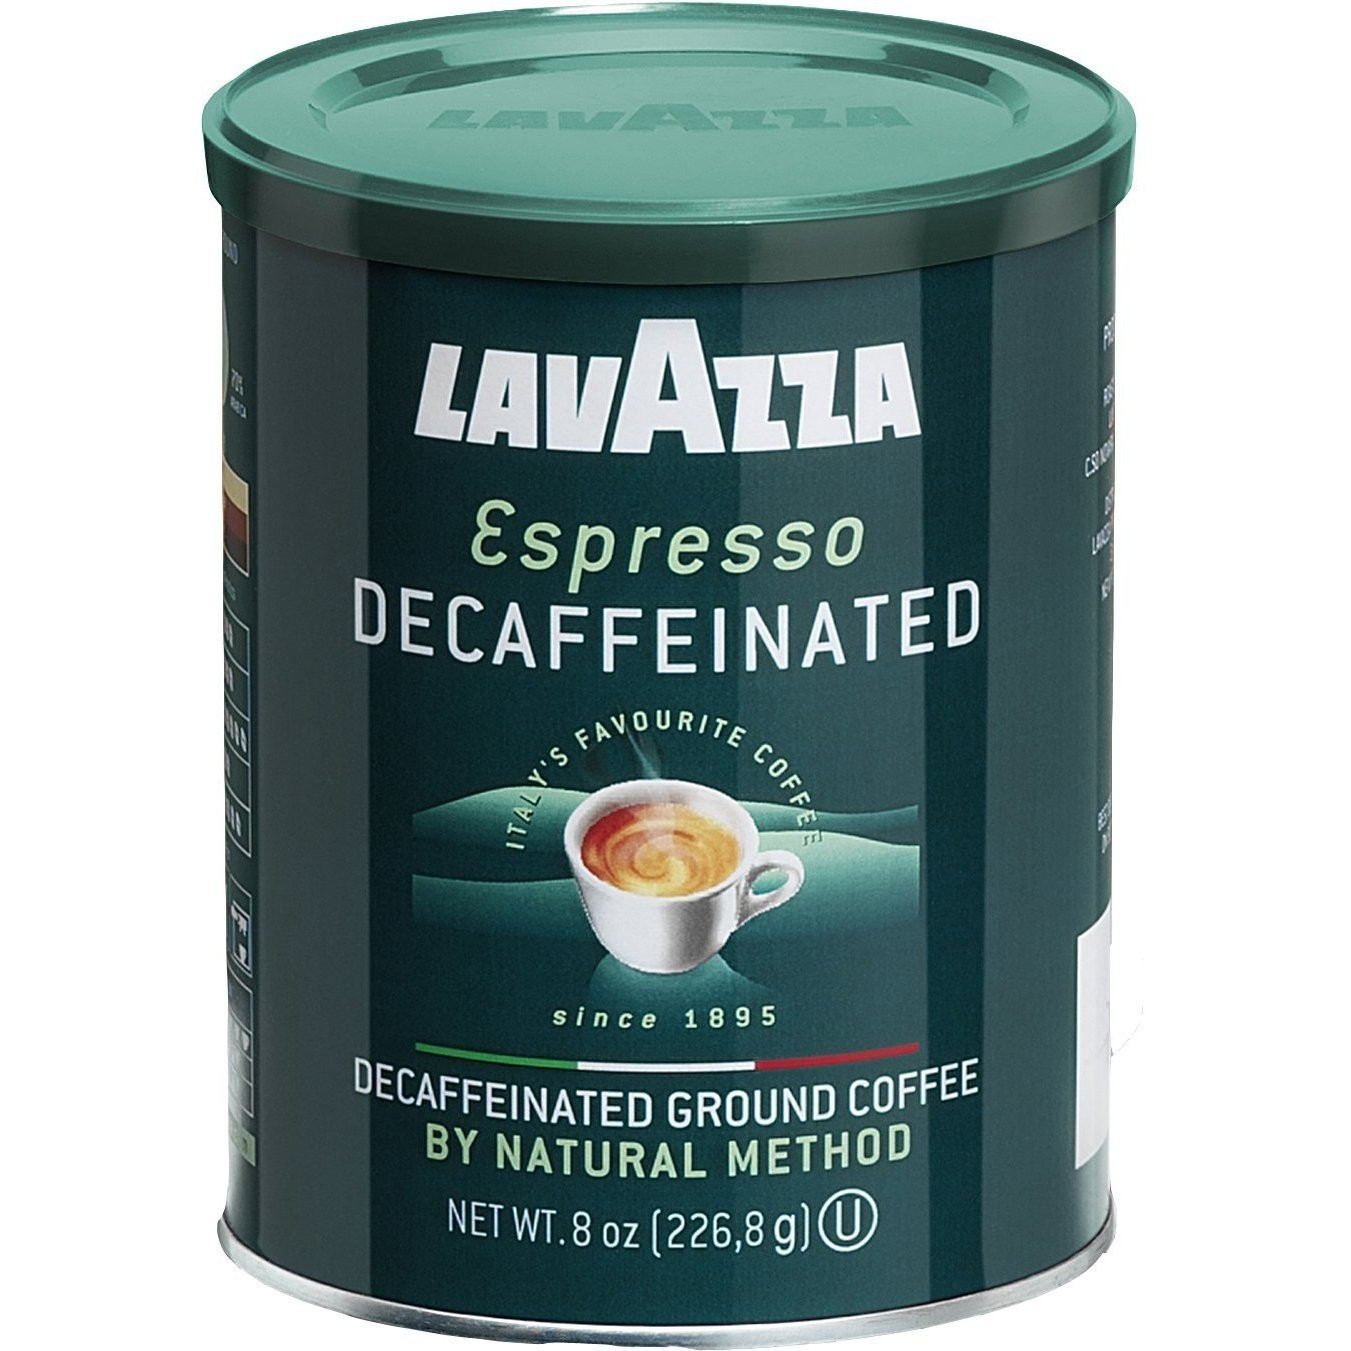 Lavazza Espresso Decaffeinato 4 8 Oz Cans, Ground